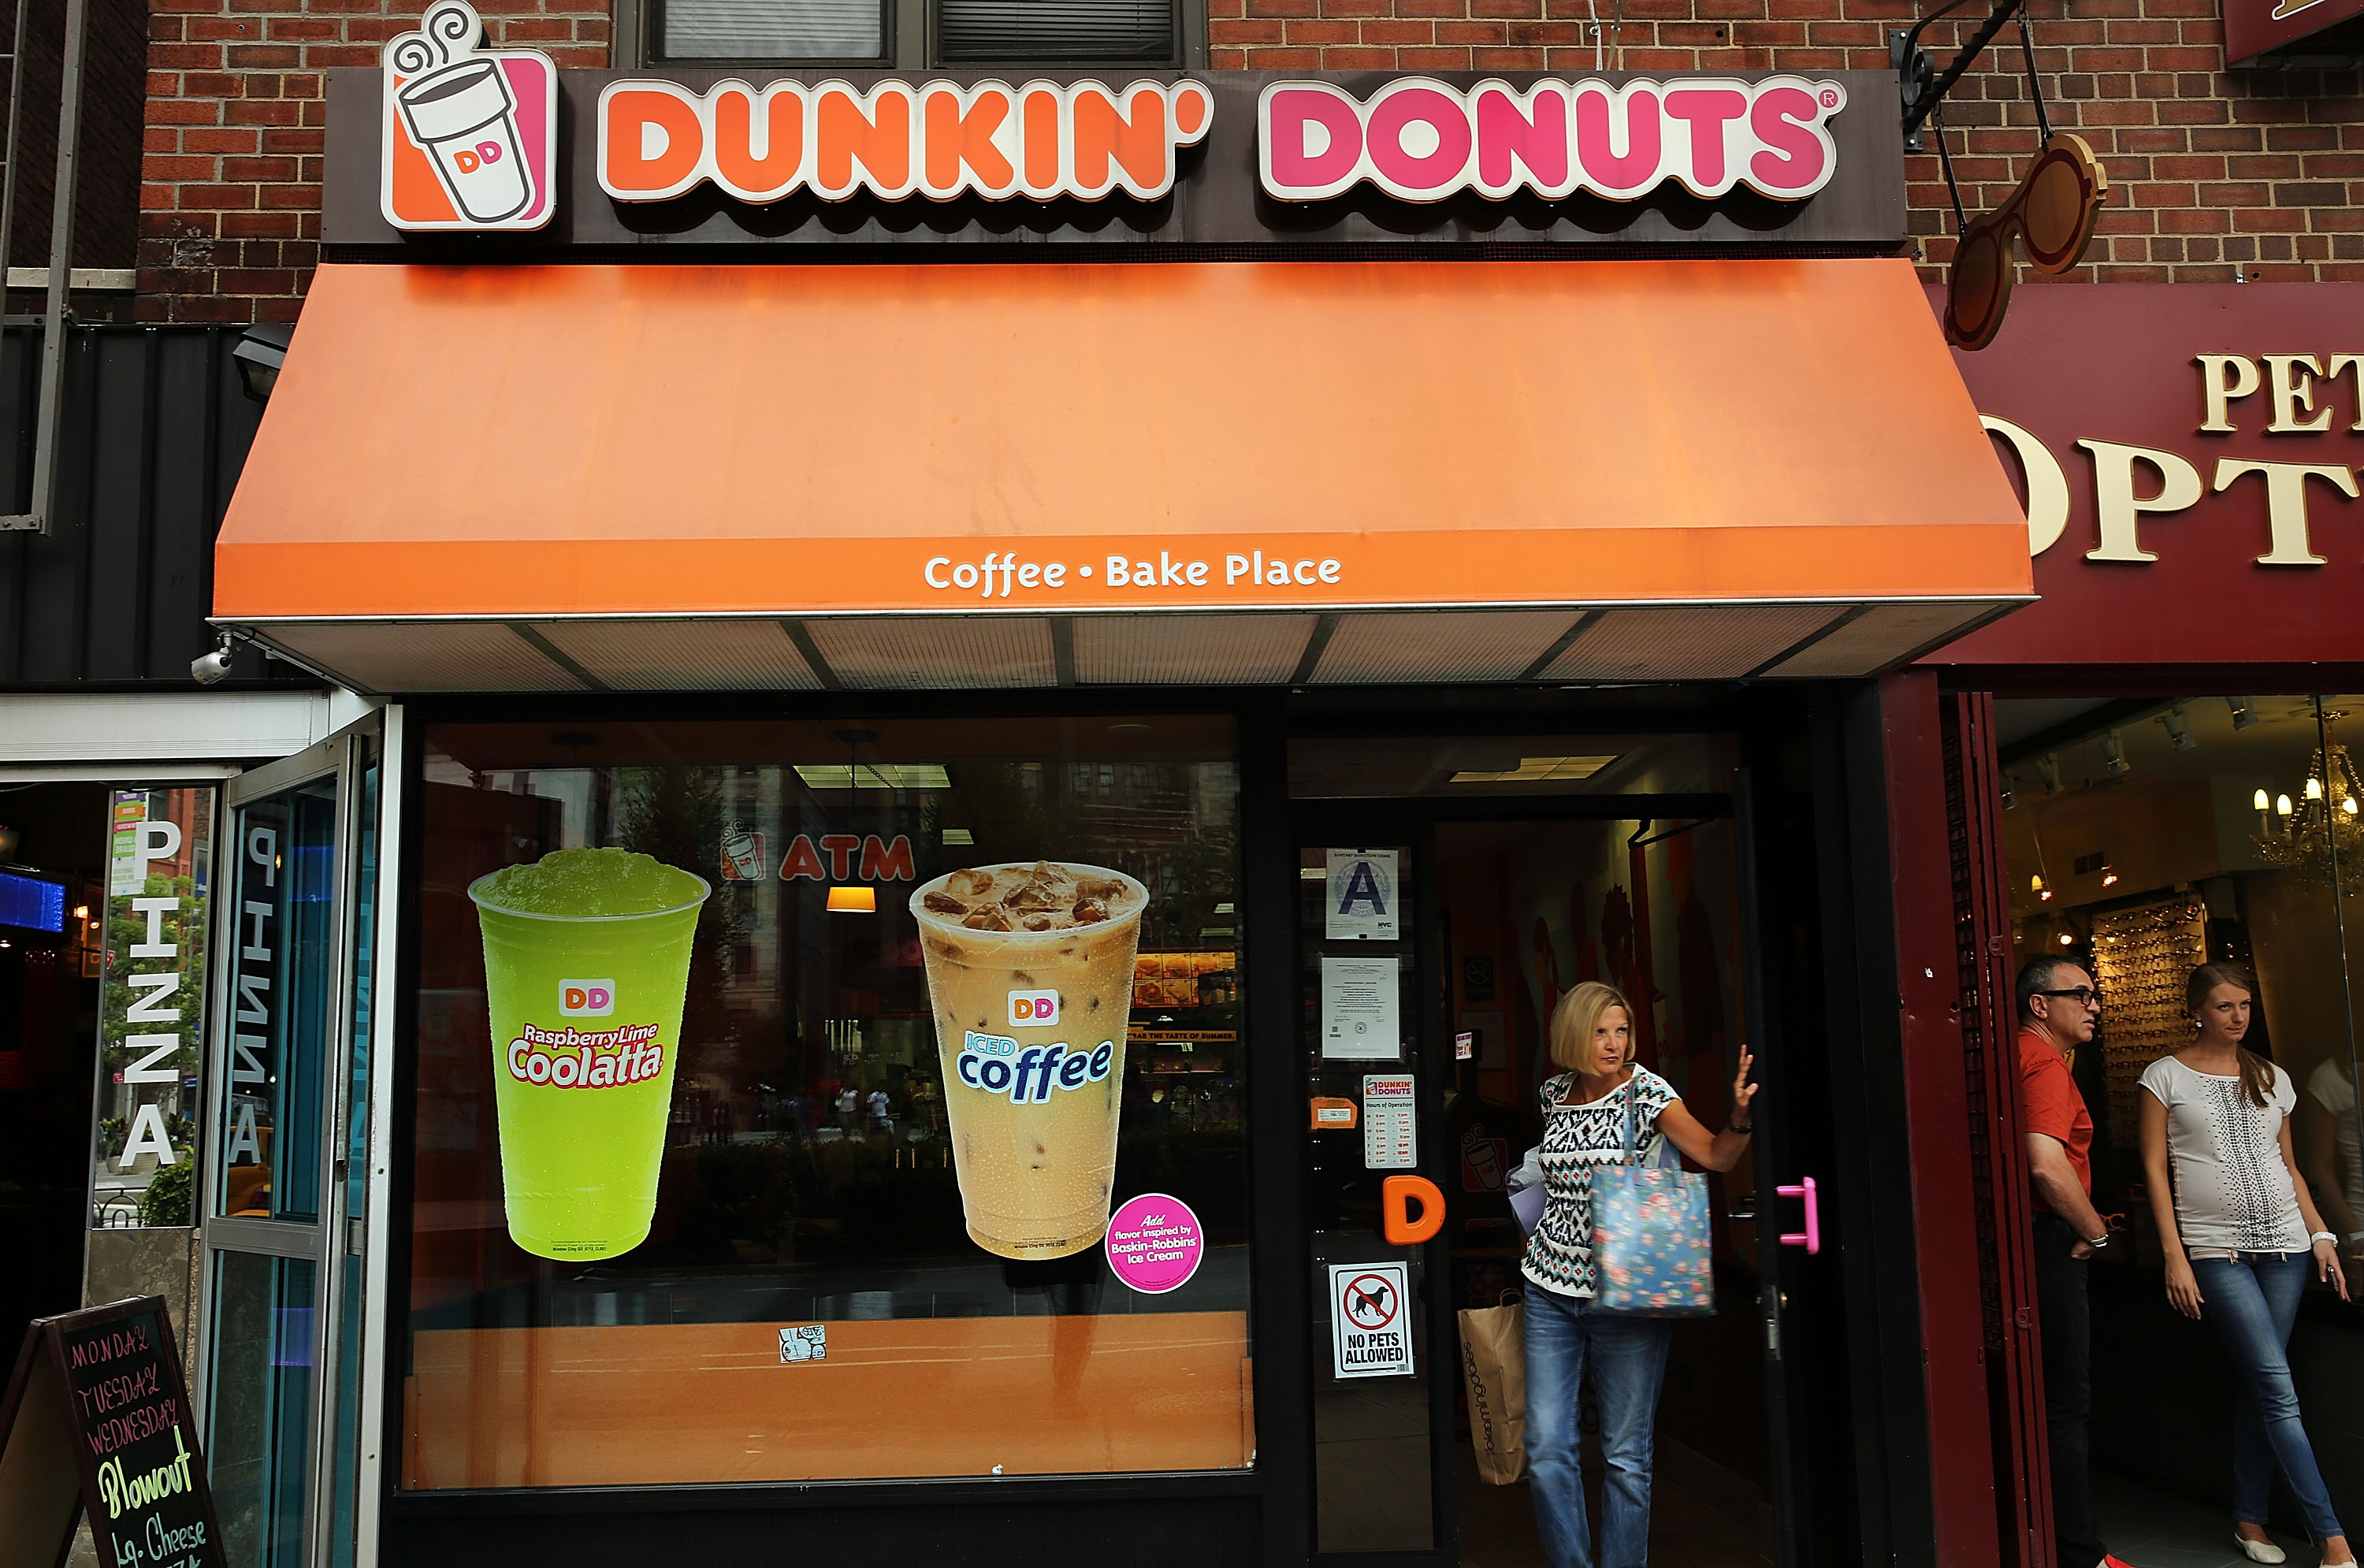 Woman Settles Lawsuit Against Dunkin' Donuts for $522K